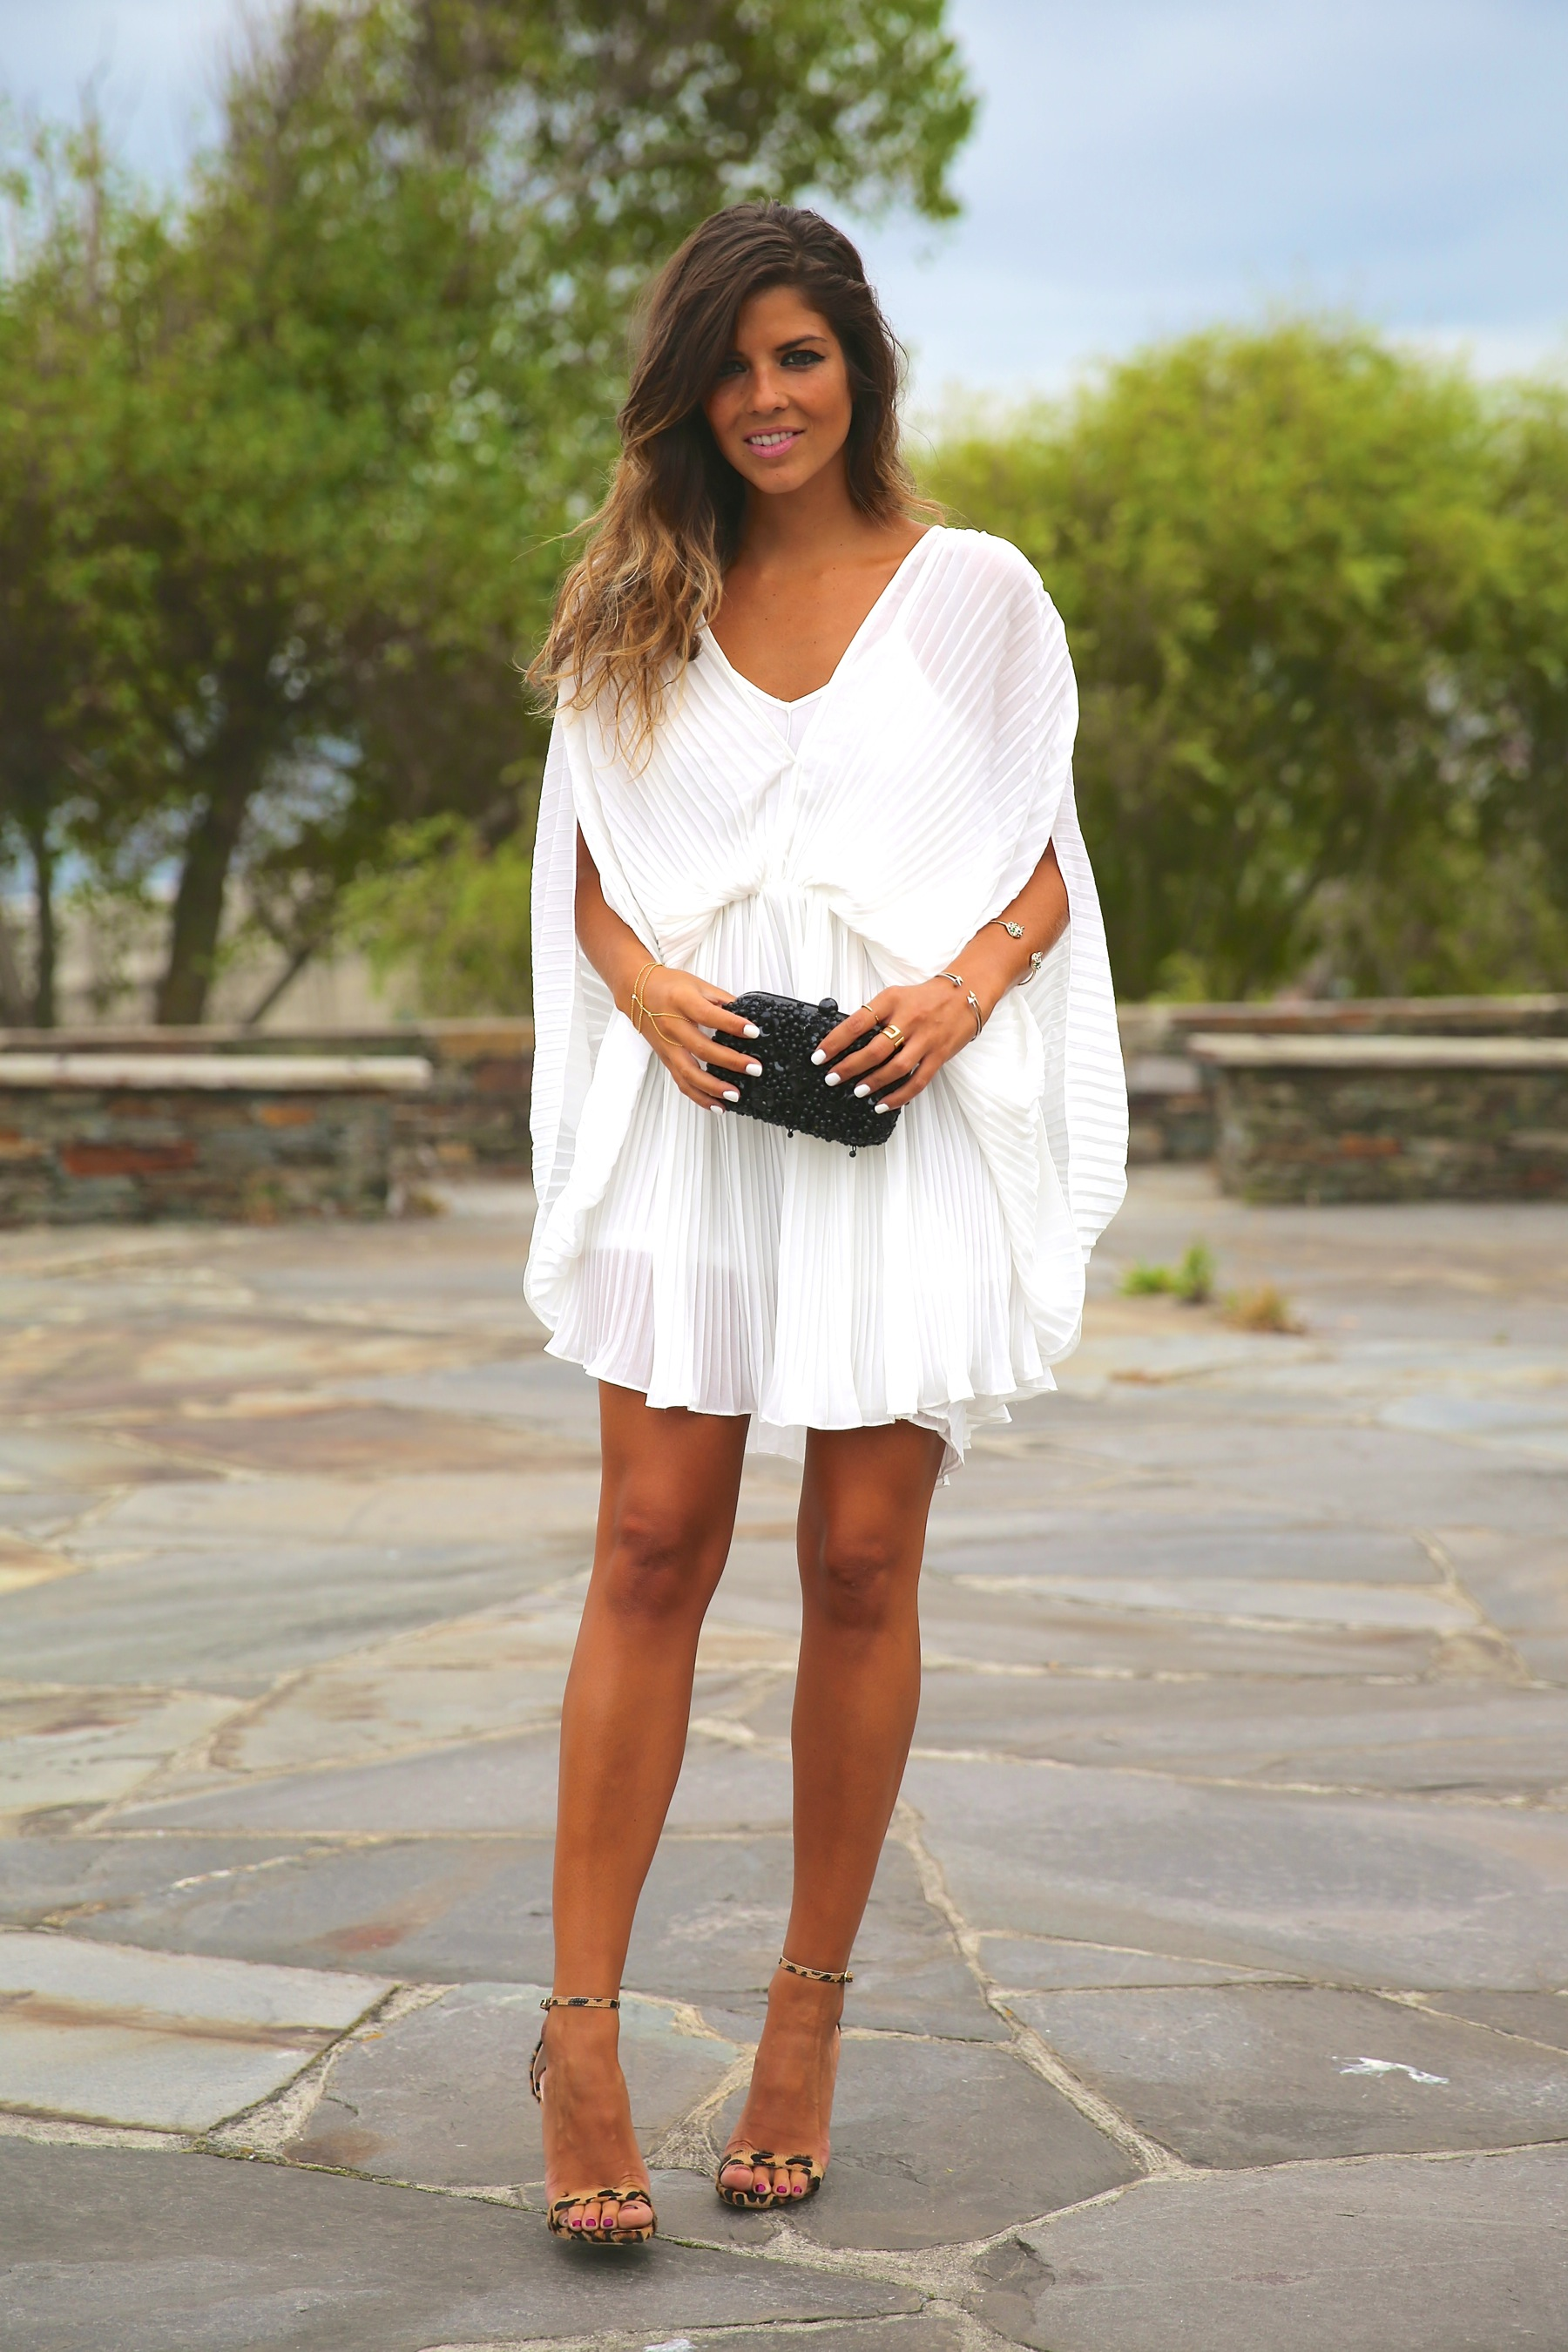 trendy_taste-look-outfit-street_style-fashion_spain-moda_españa-blog-blogger-vestido_blanco-white_dress-müic-jewels-joyas-leo_sandals-sandalias_leopardo-clutch_pedreria-18